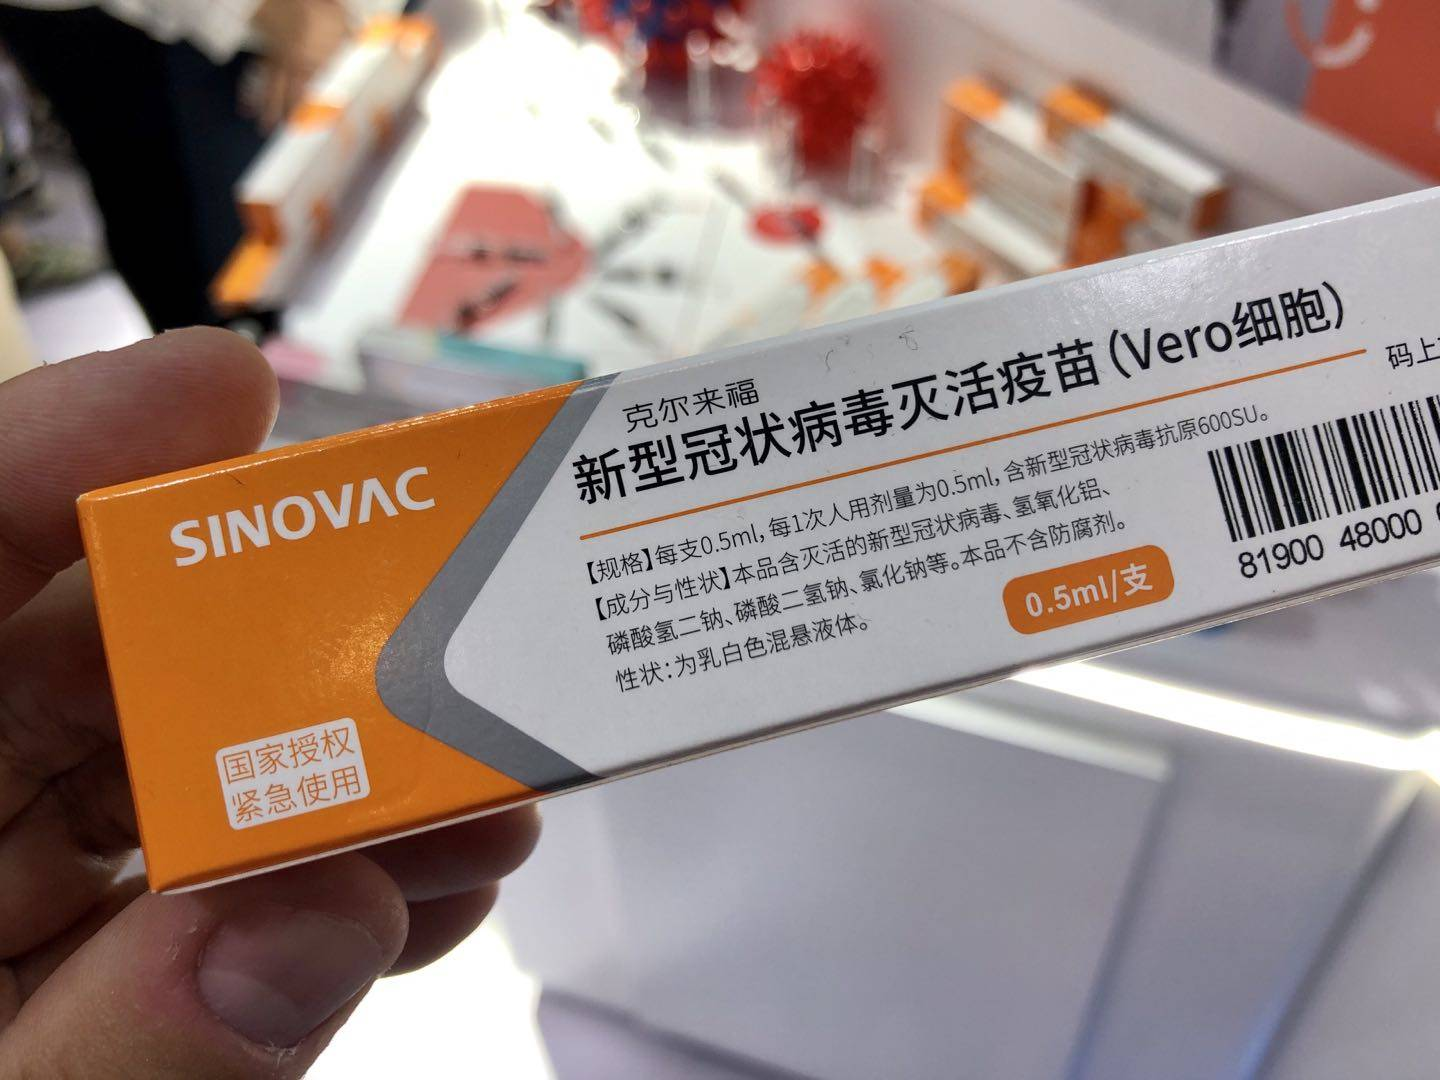 The data of booster shot of SINOVAC COVID-19 Vaccine is released.